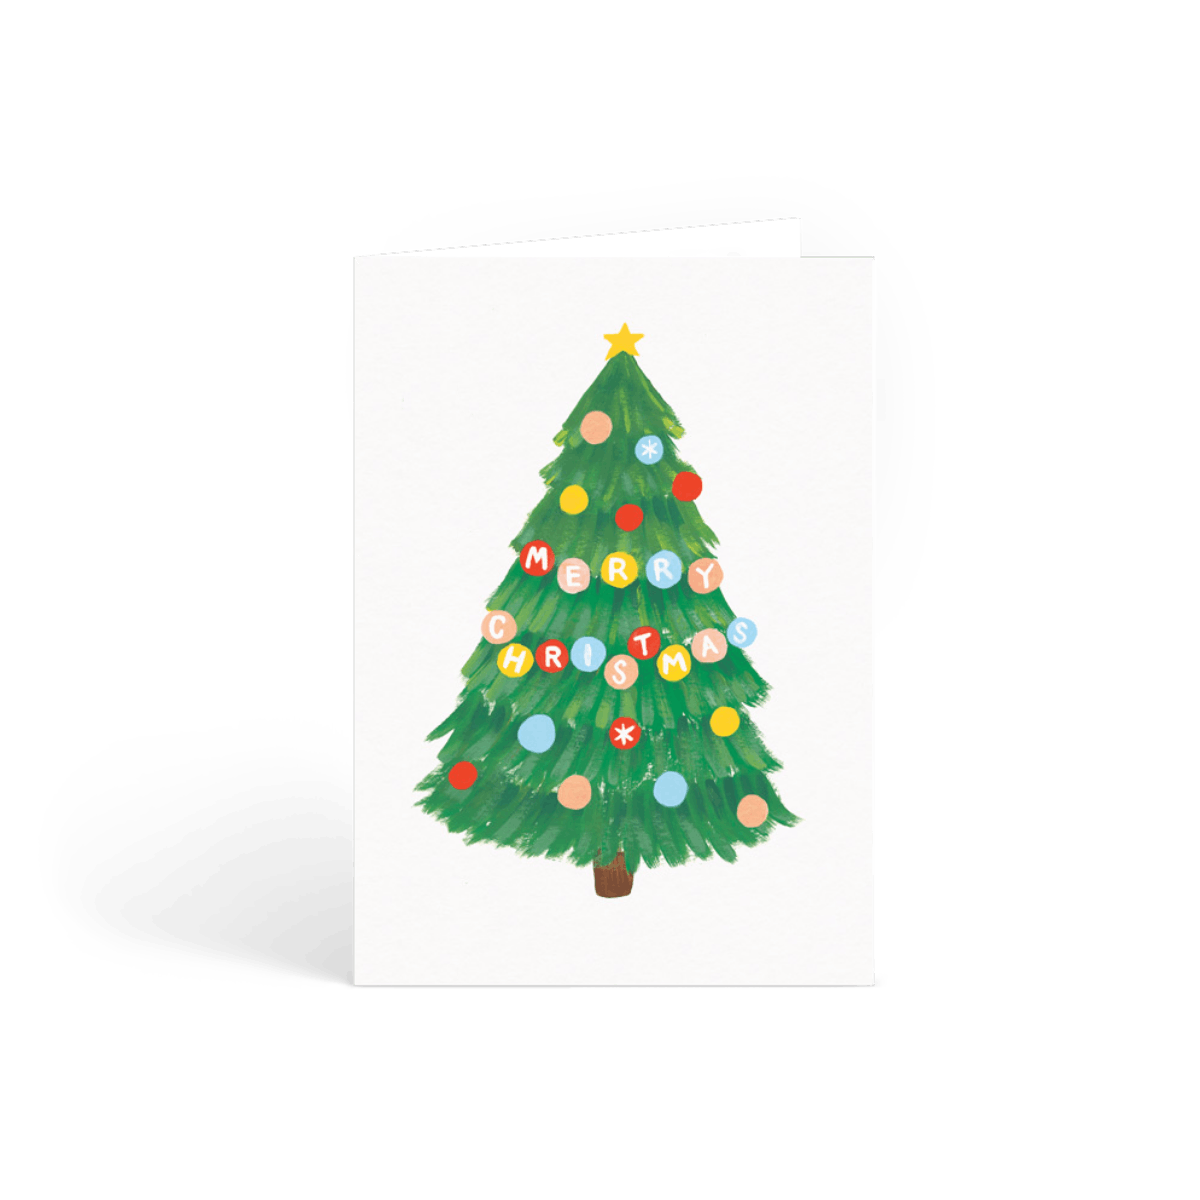 Https%3a%2f%2fwww.papier.com%2fproduct image%2f24872%2f2%2fchristmas tree baubles 6203 avant 1498654499.png?ixlib=rb 1.1